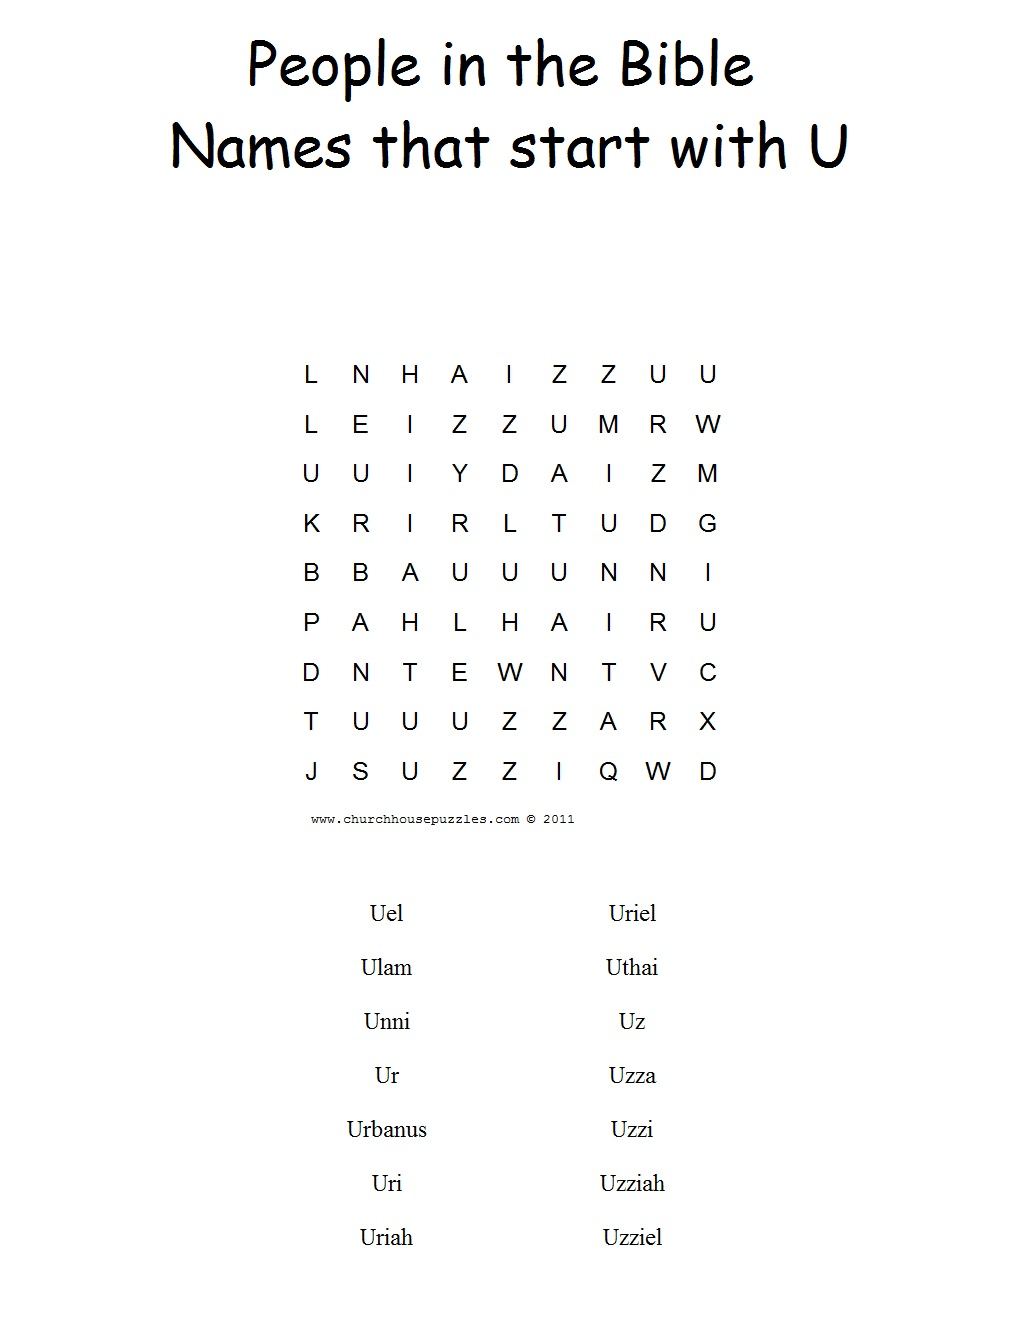 Names That Start With U Word Search Puzzle